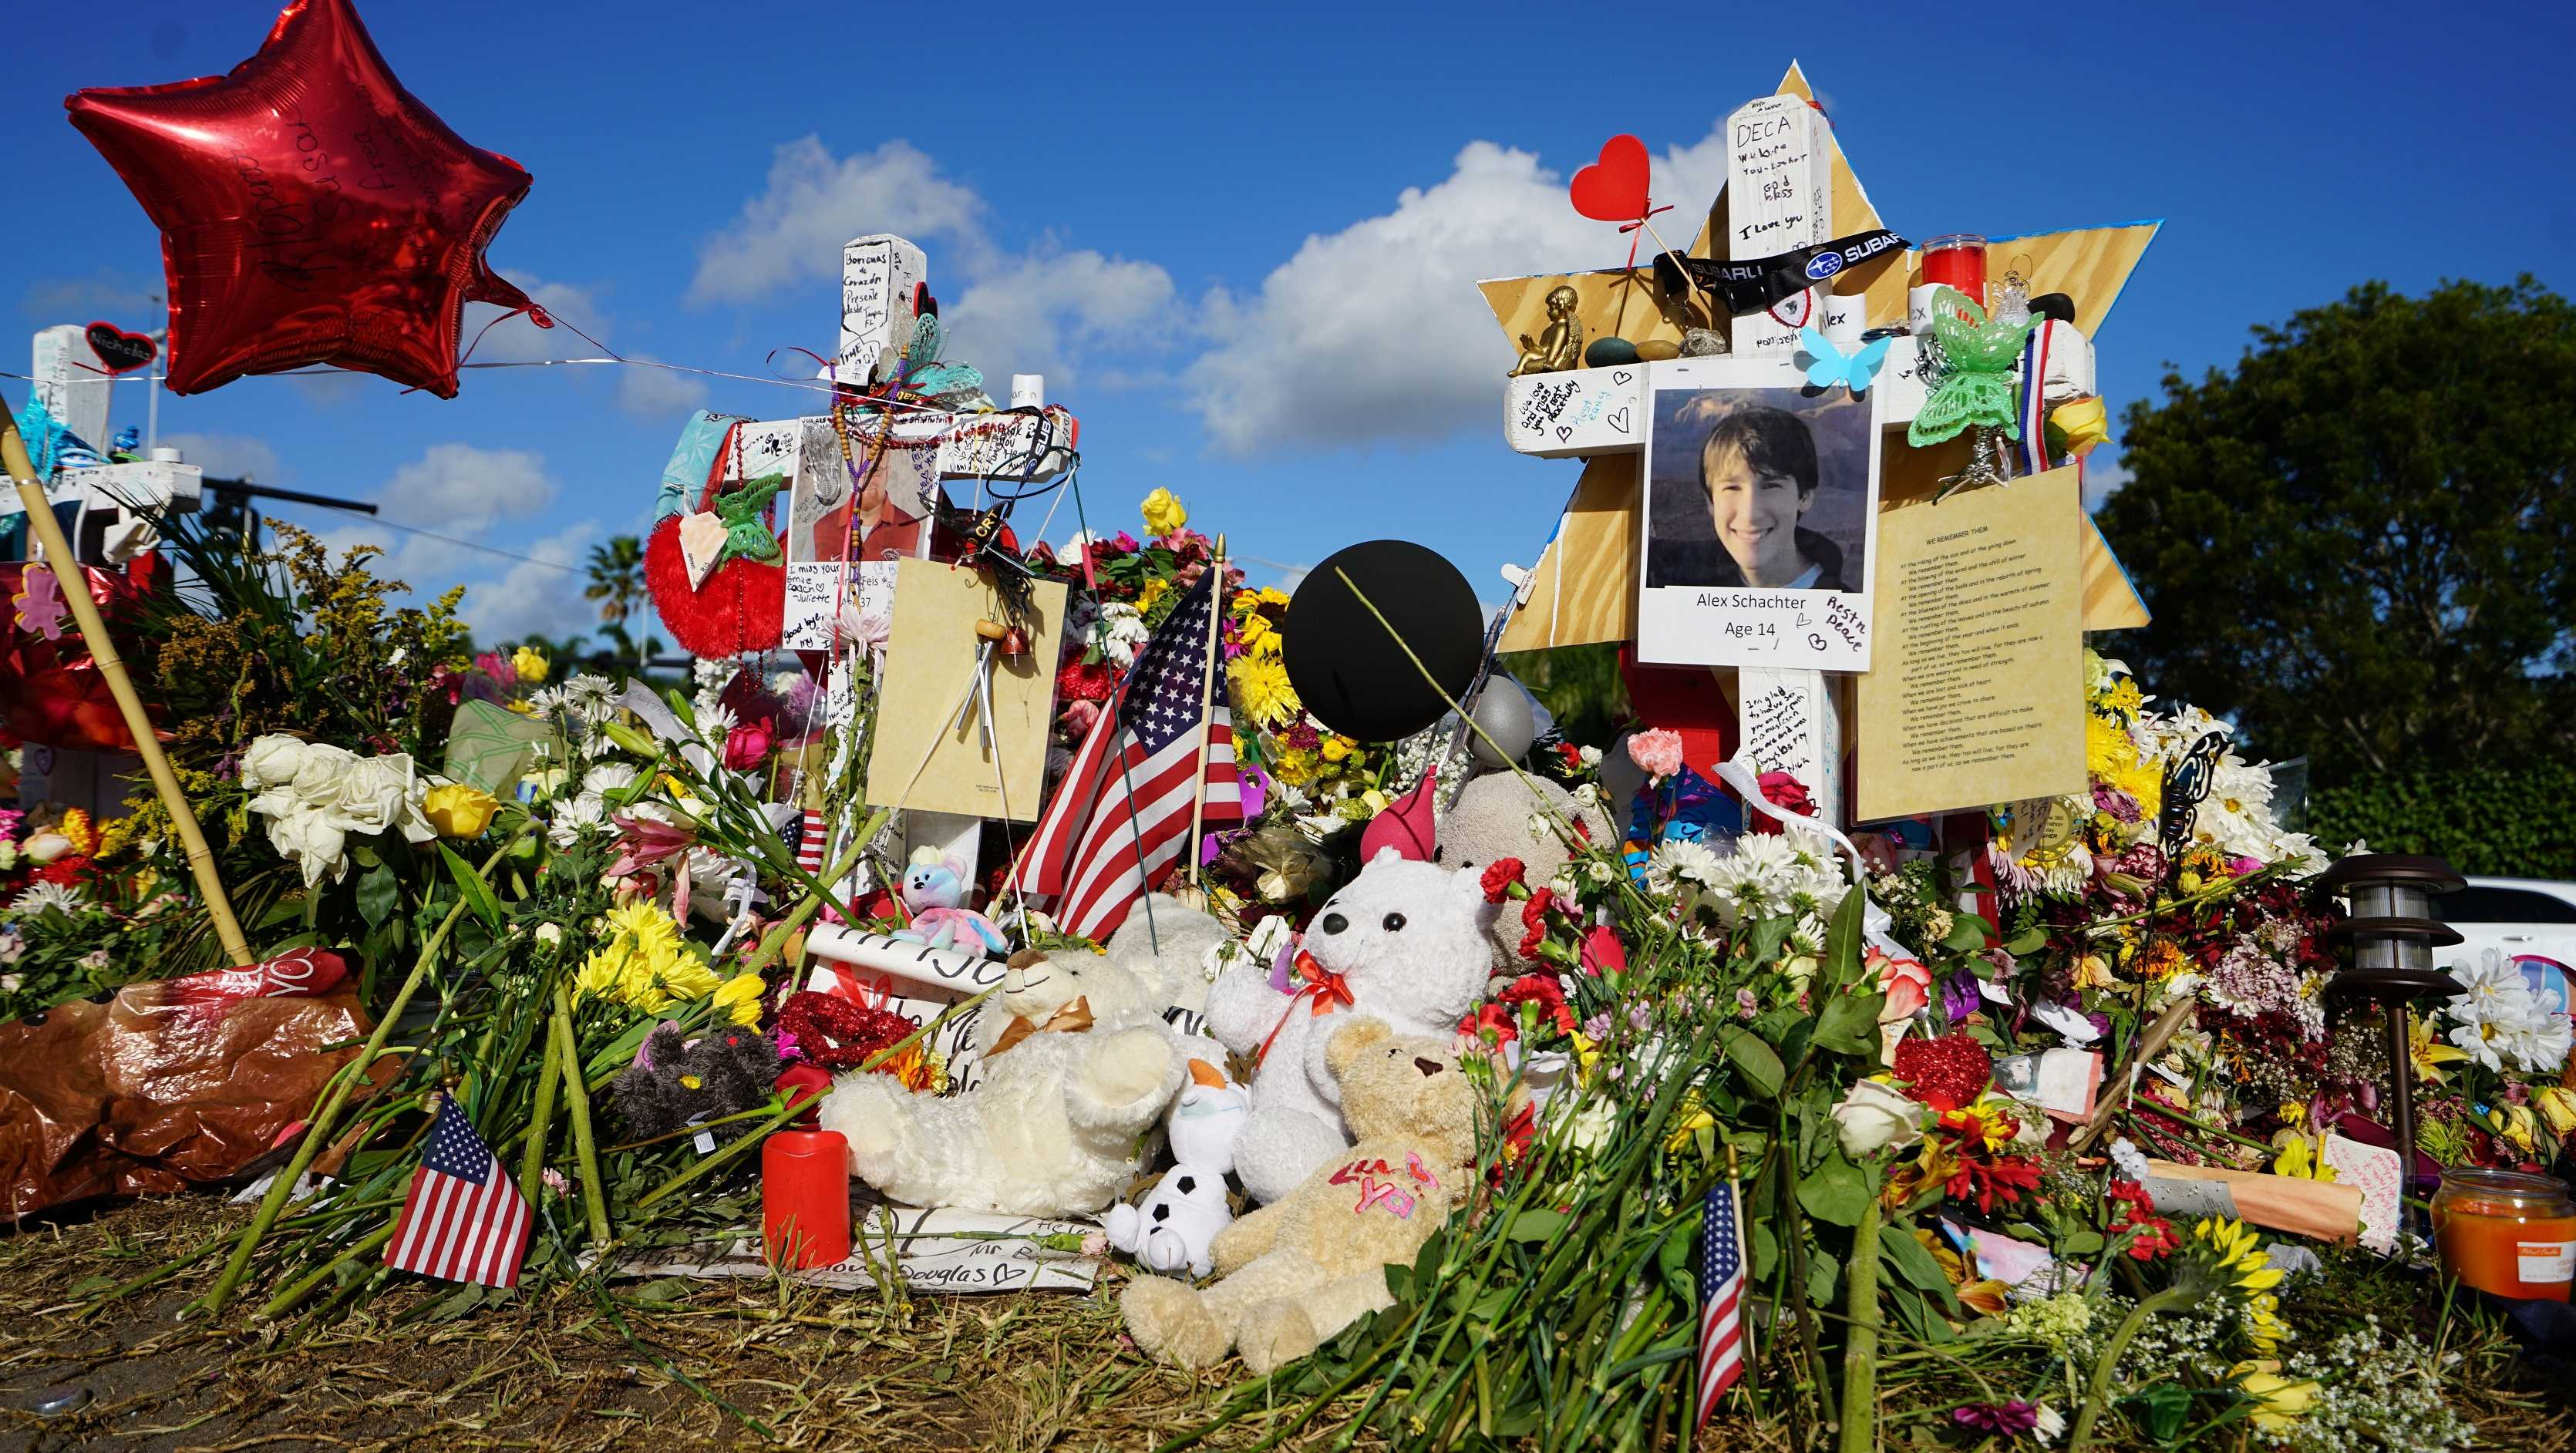 Memorial for slain students in Parkland, Florida. Marjory Stoneman Douglas High School is located in the Miami metropolitan area andpart of the Broward County Public School district.